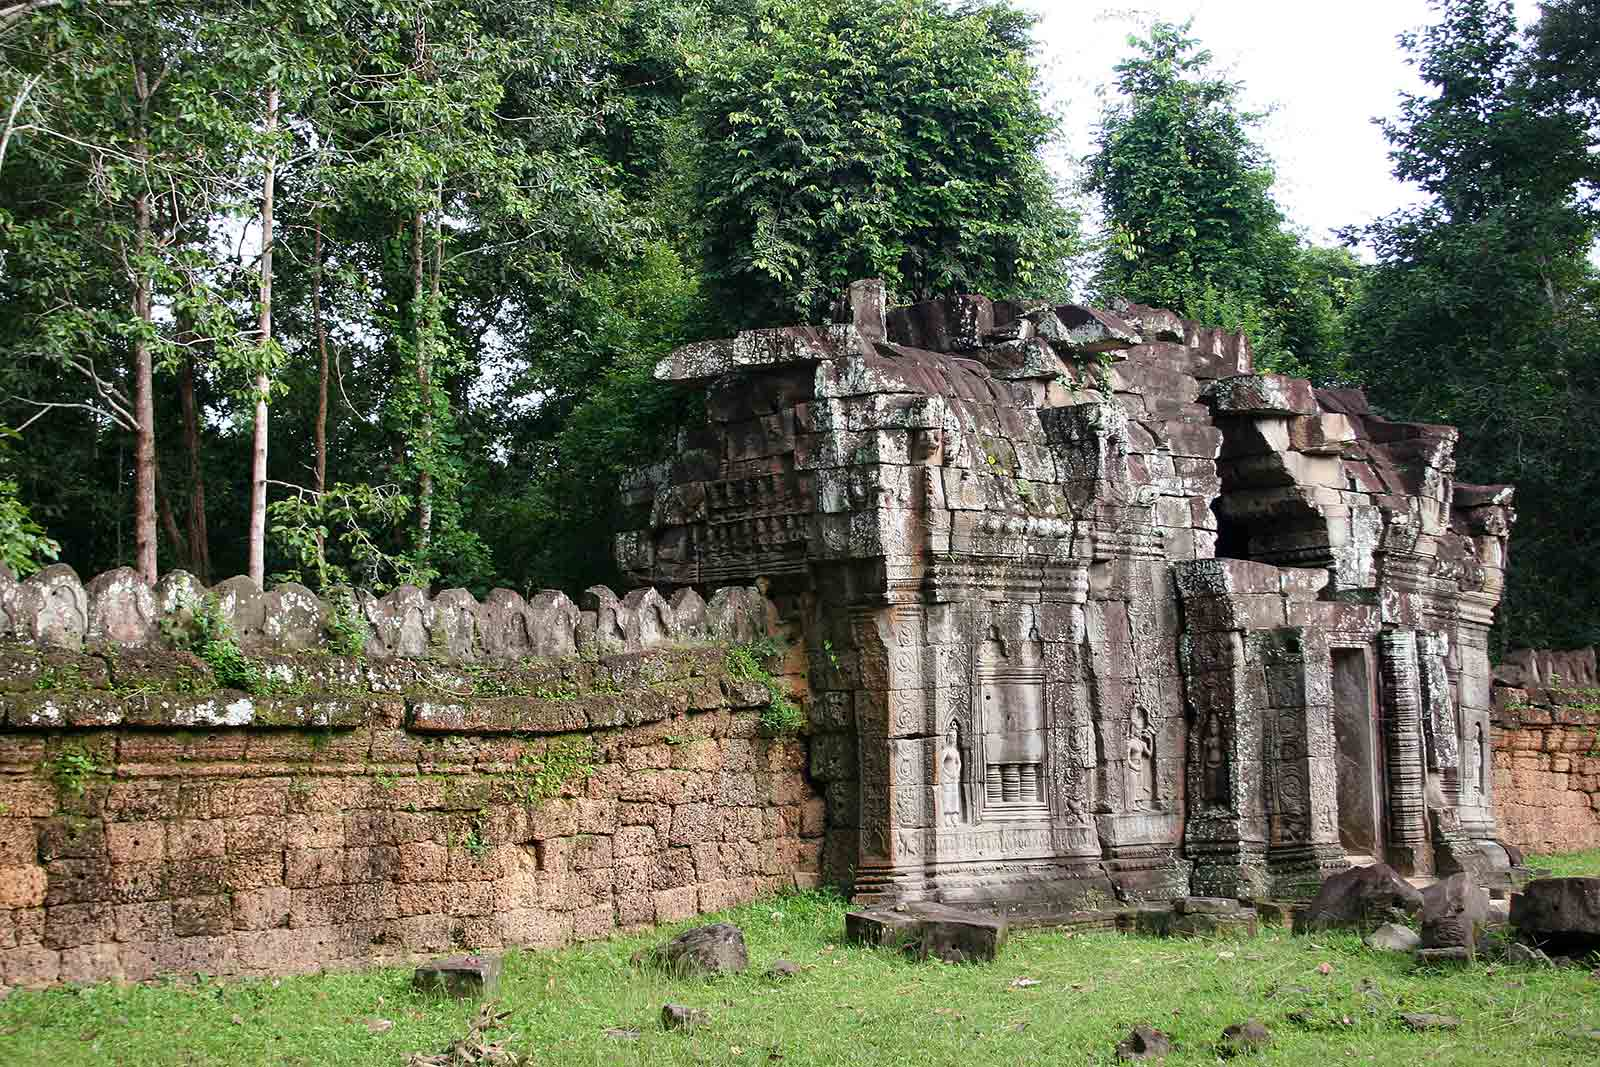 Impressive walls around the temples were built as well.